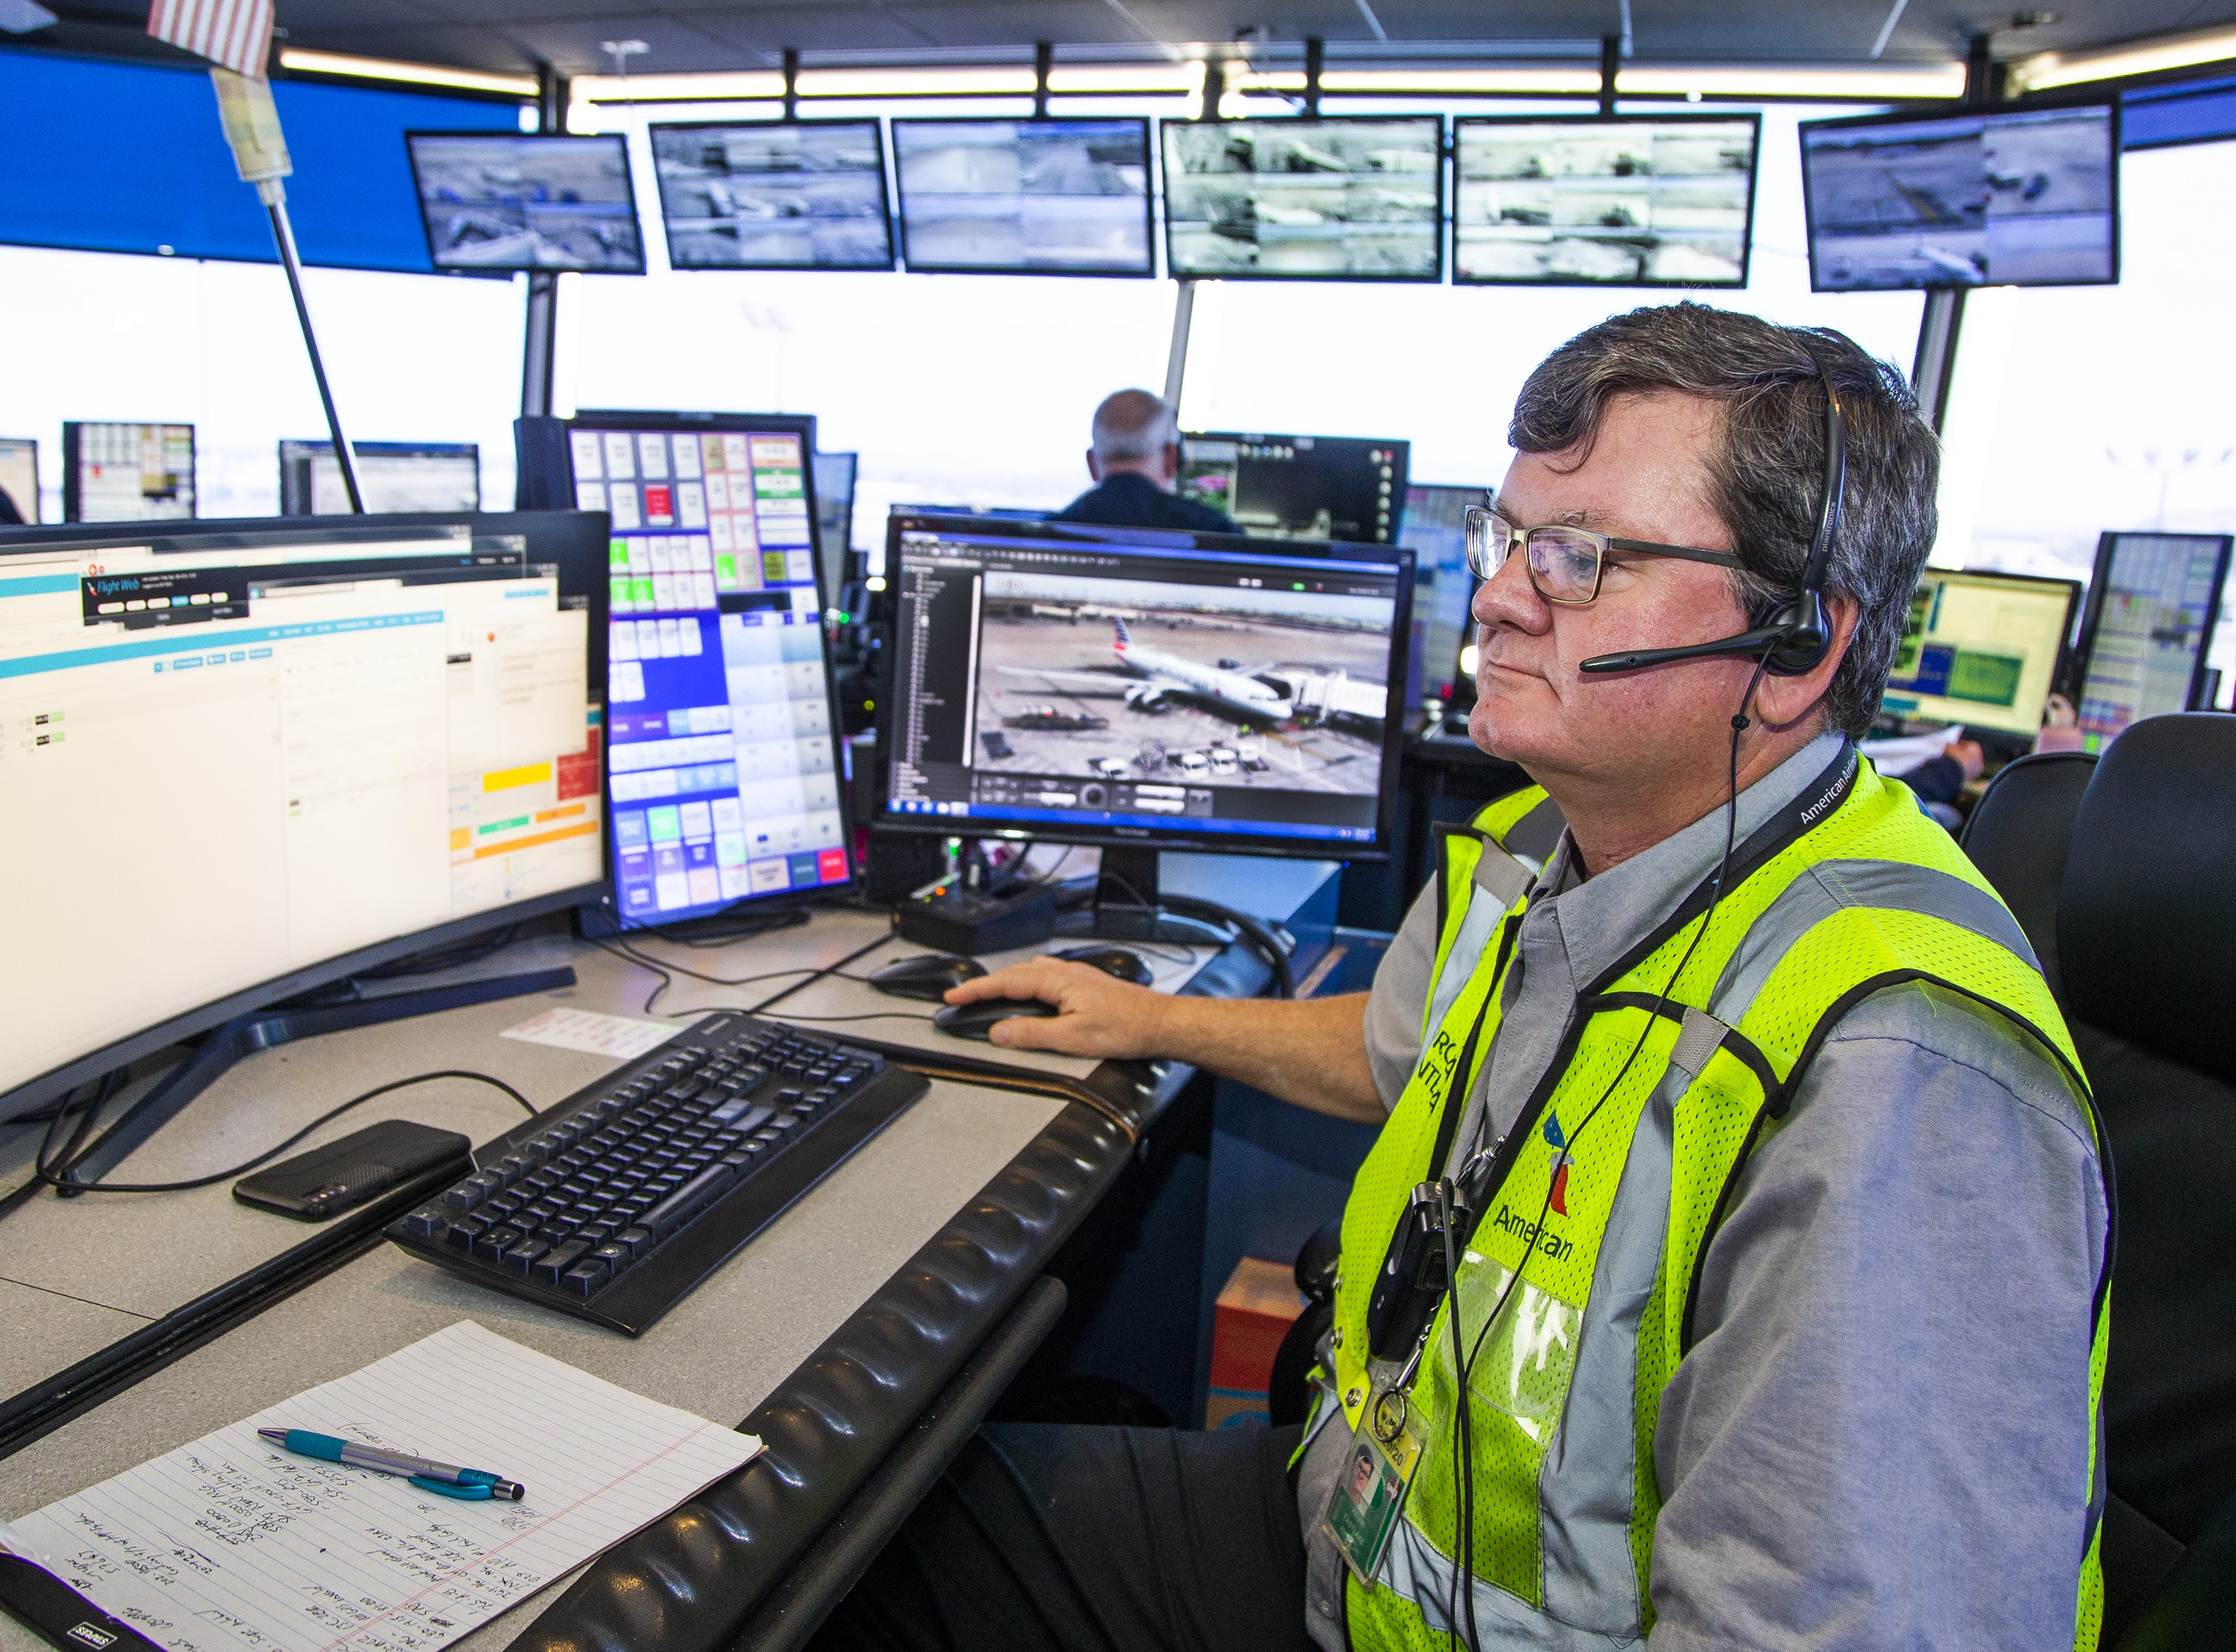 Kevin Eastlake, a maintenance supervisor for American Airlines, monitors incoming and outgoing flights from the American Airlines tower at Sky Harbor International Airport, Friday, May 10, 2019.